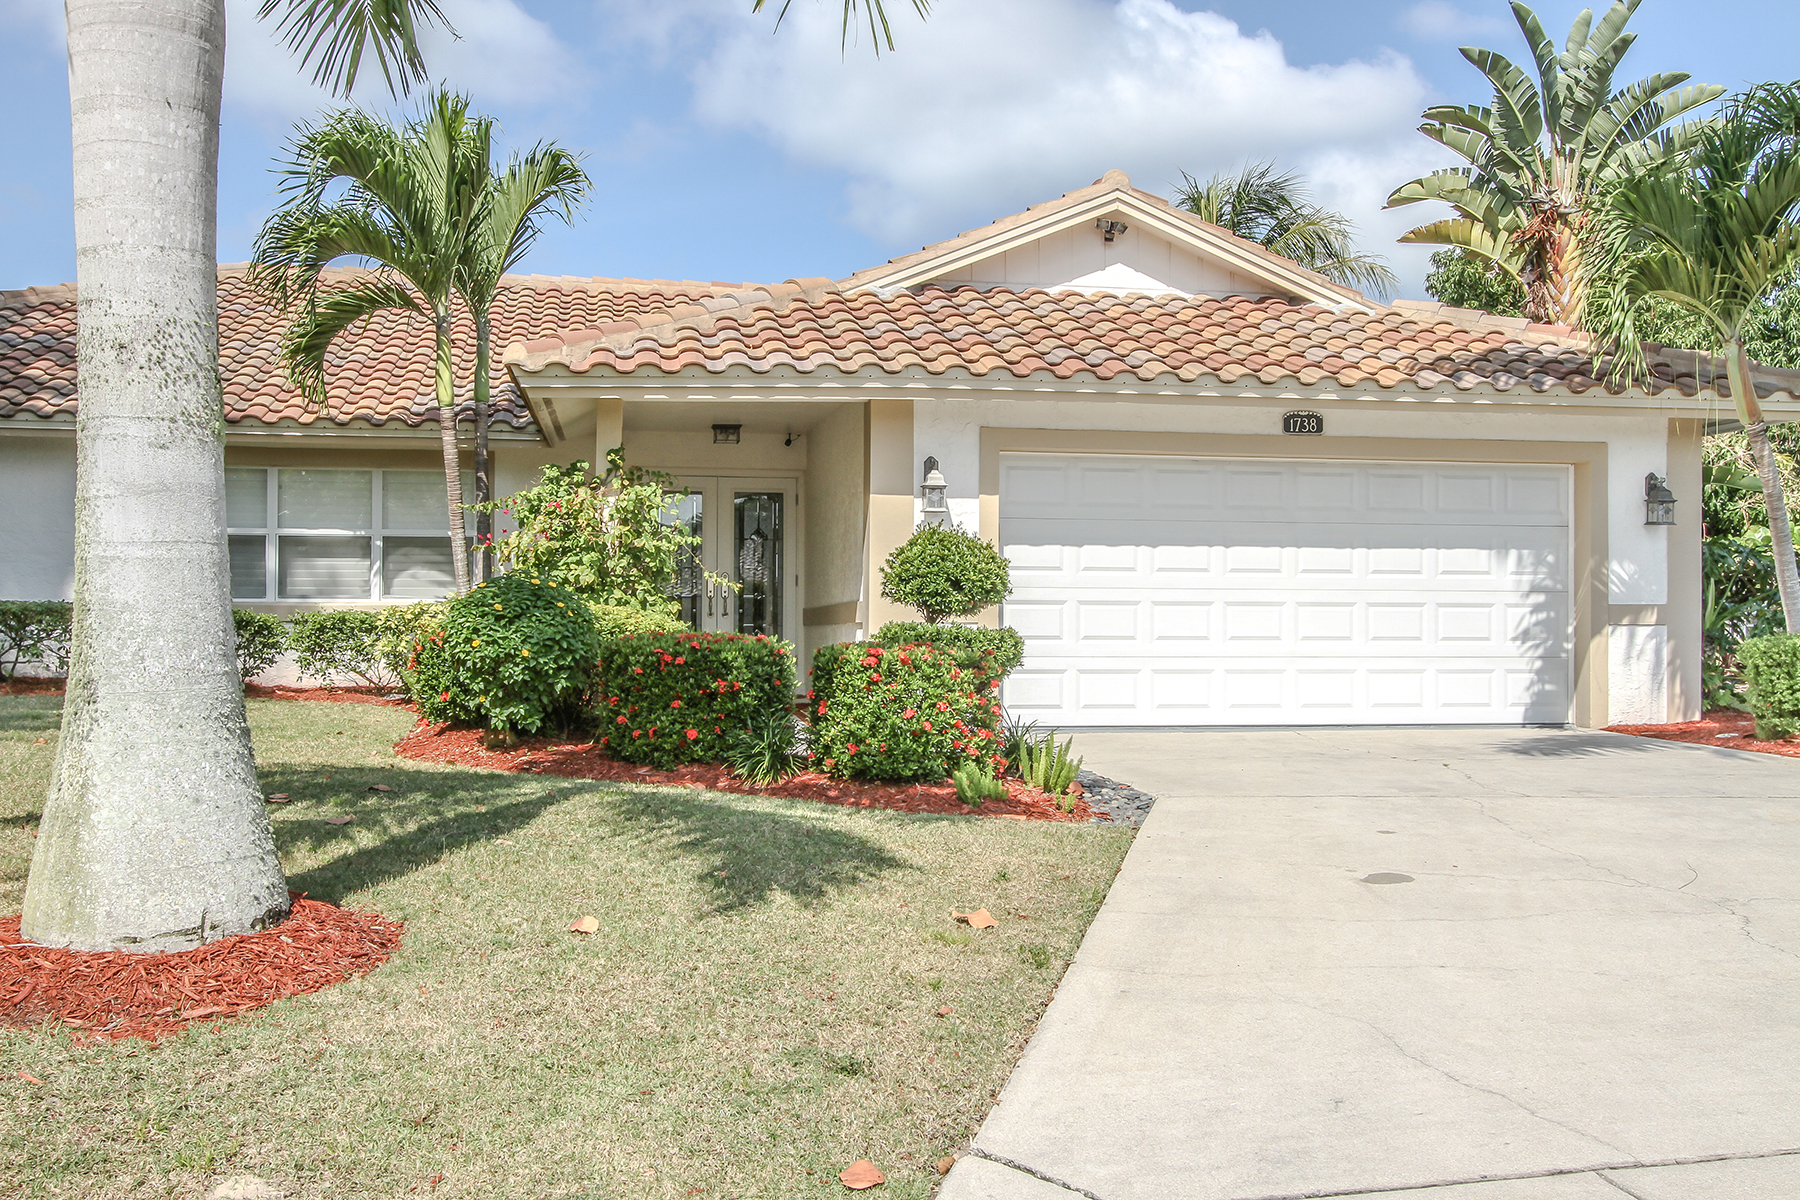 Single Family Home for Rent at MARCO BEACH 1738 Dogwood Dr, Marco Island, Florida 34145 United States